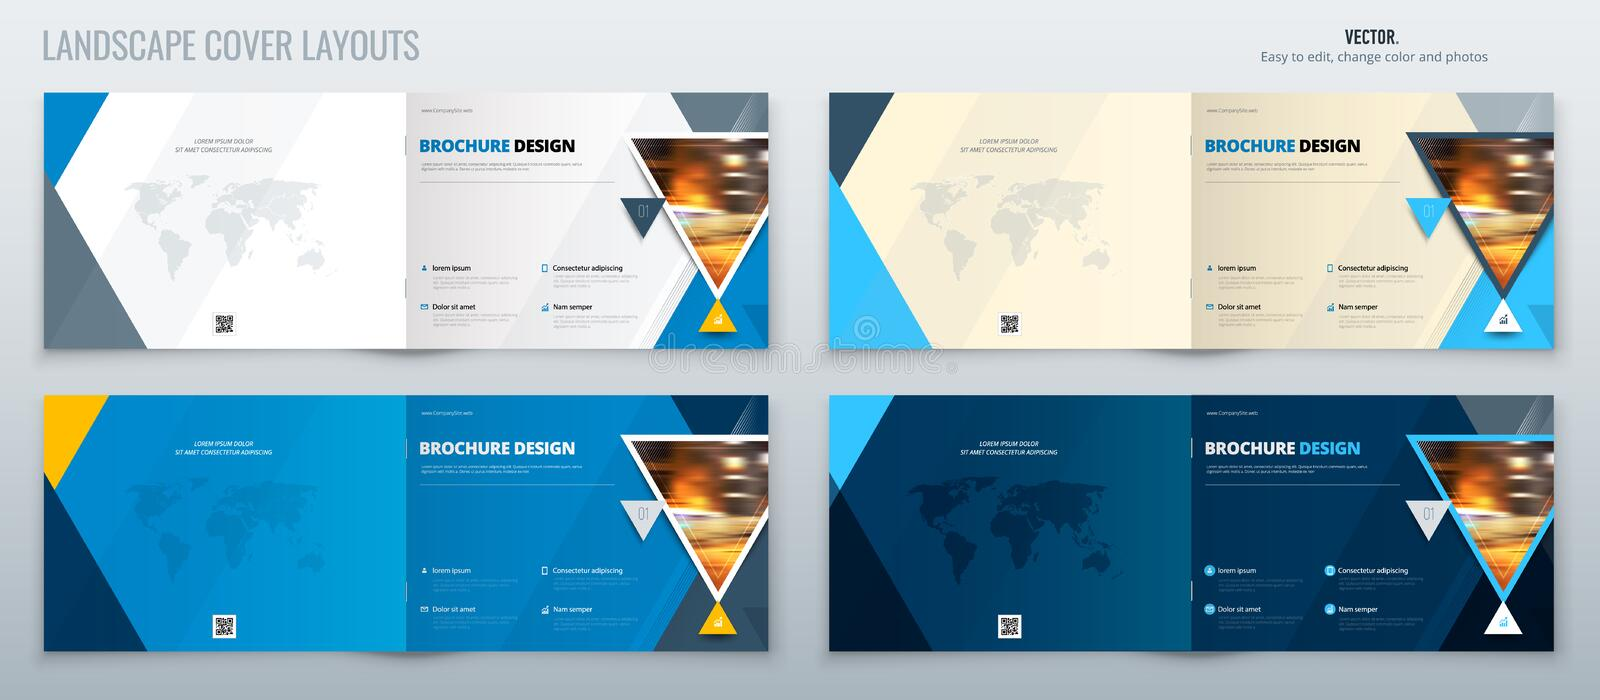 Blue landscape Brochure template layout, cover design annual report, magazine, flyer or brochure in A4 with triangle vector illustration